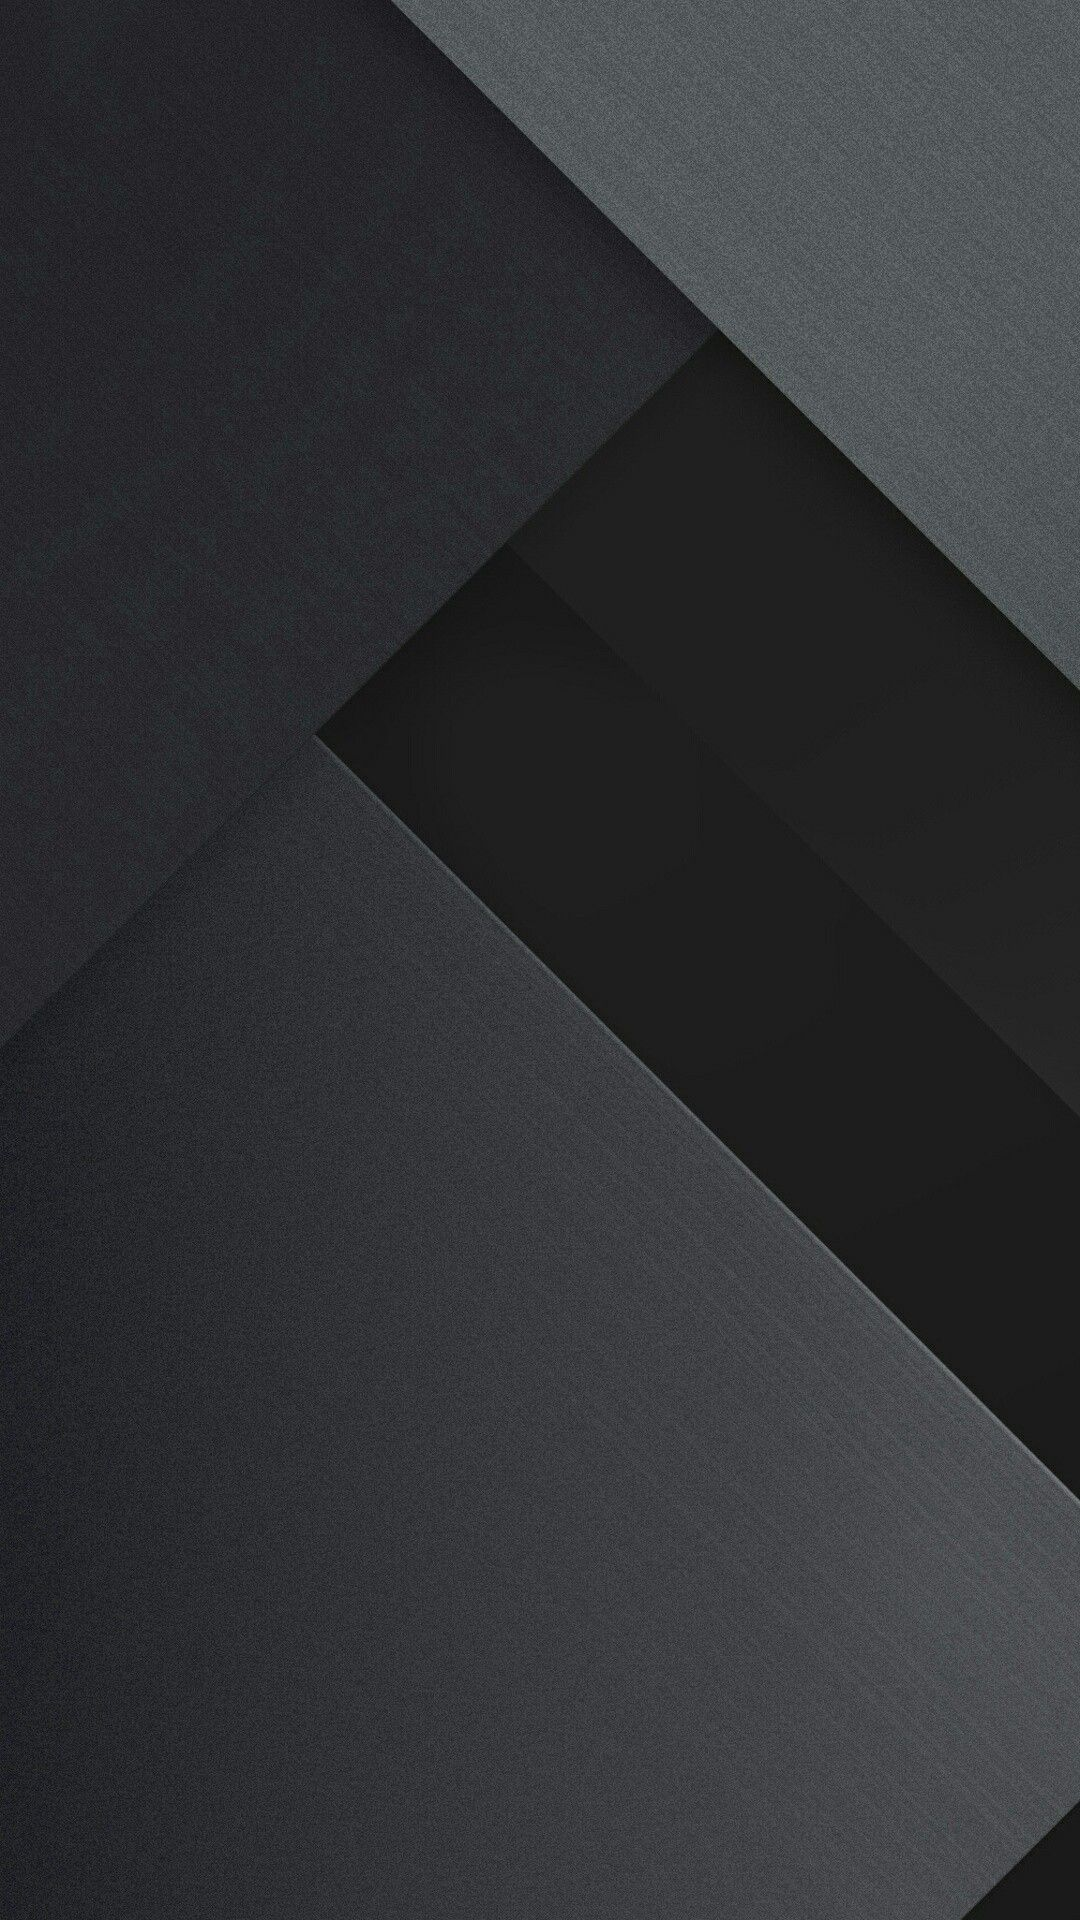 Grey Scale Abstract Wallpaper Grey wallpaper iphone